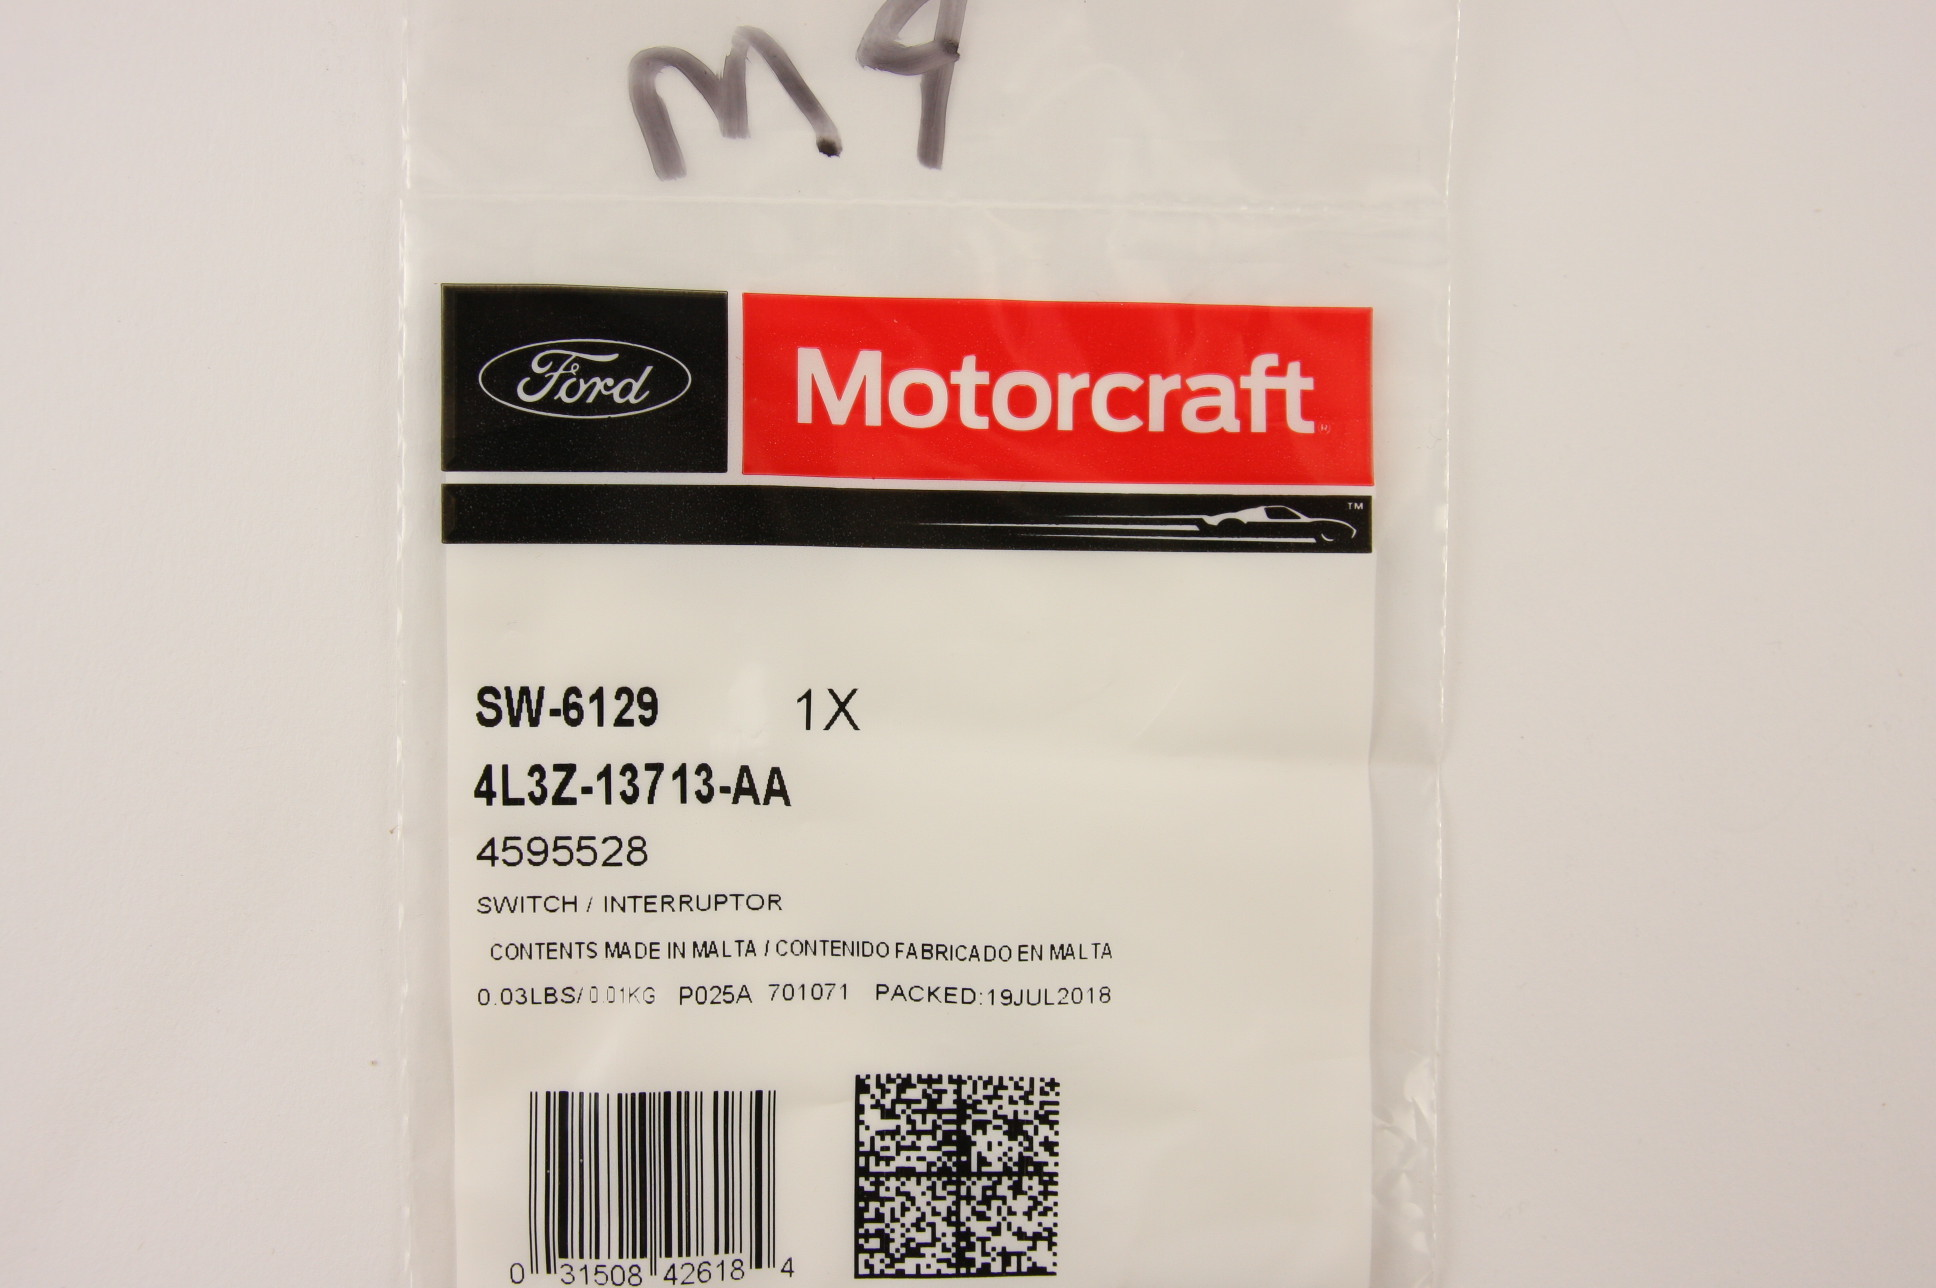 New OEM Motorcraft SW6129 Door Open Warning Switch Front Left Ford 4L3Z13713AA - image 8